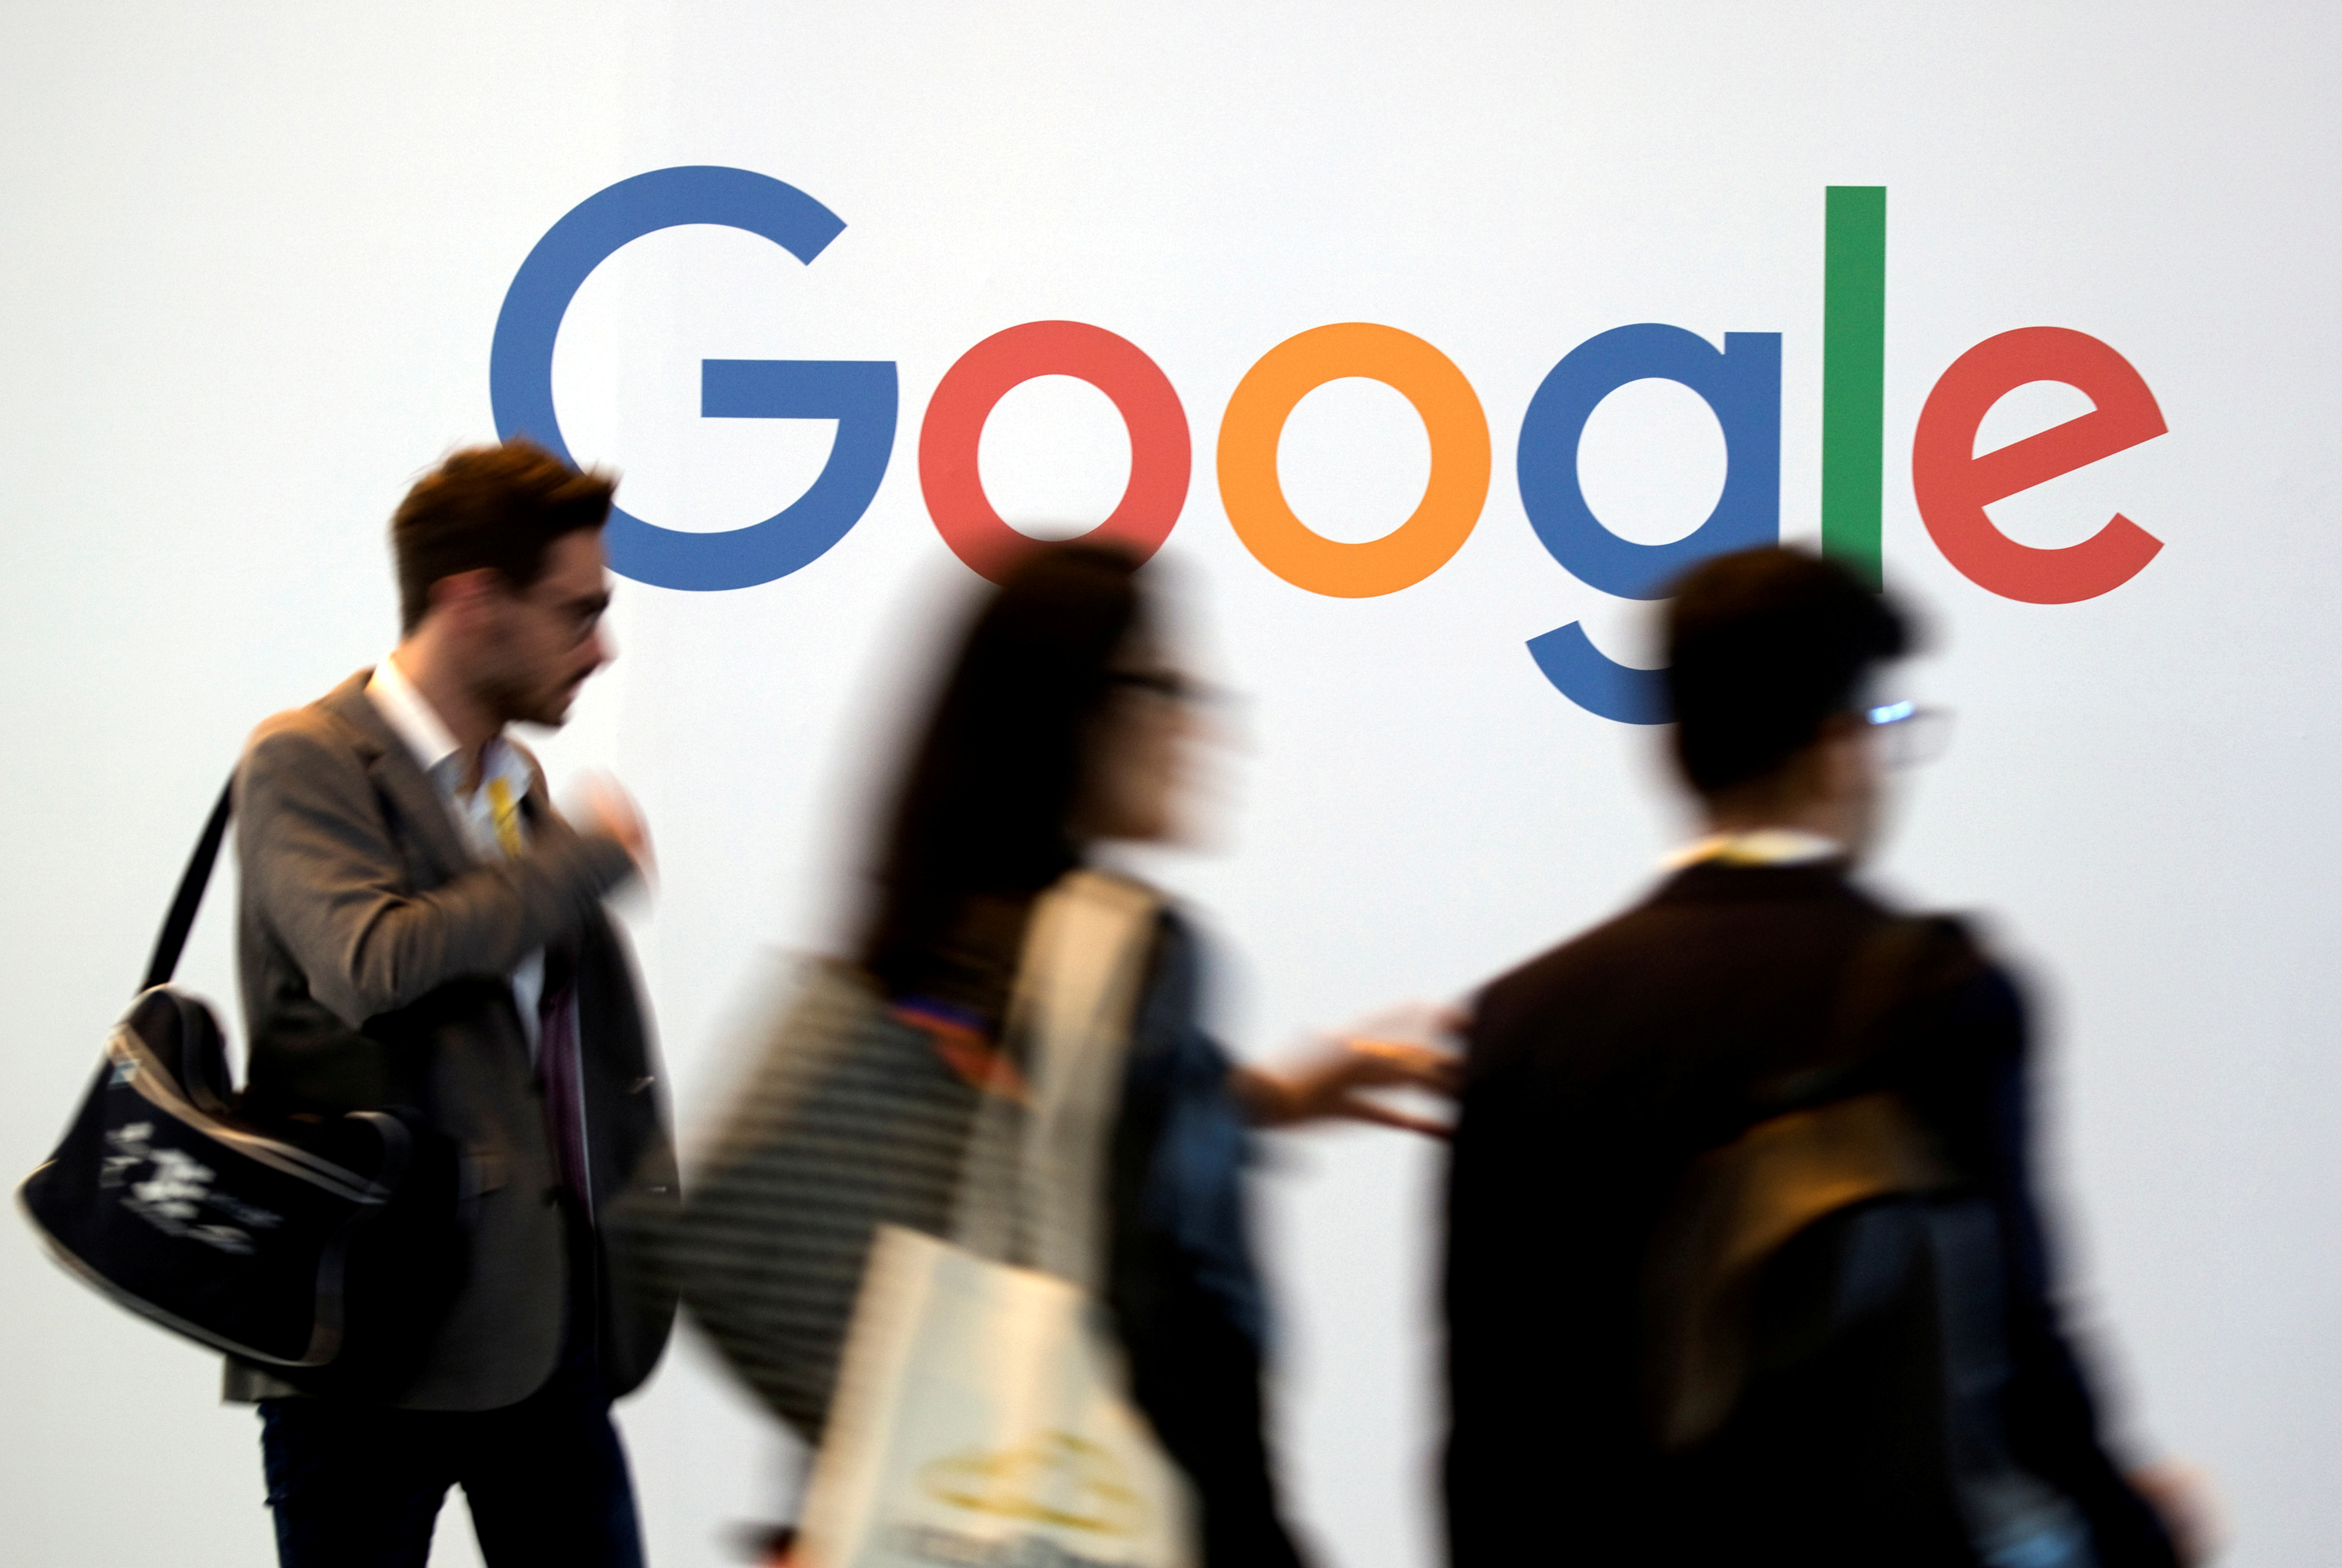 The logo of Google is pictured during the Viva Tech start-up and technology summit in Paris, France, May 25, 2018. REUTERS/Charles Platiau